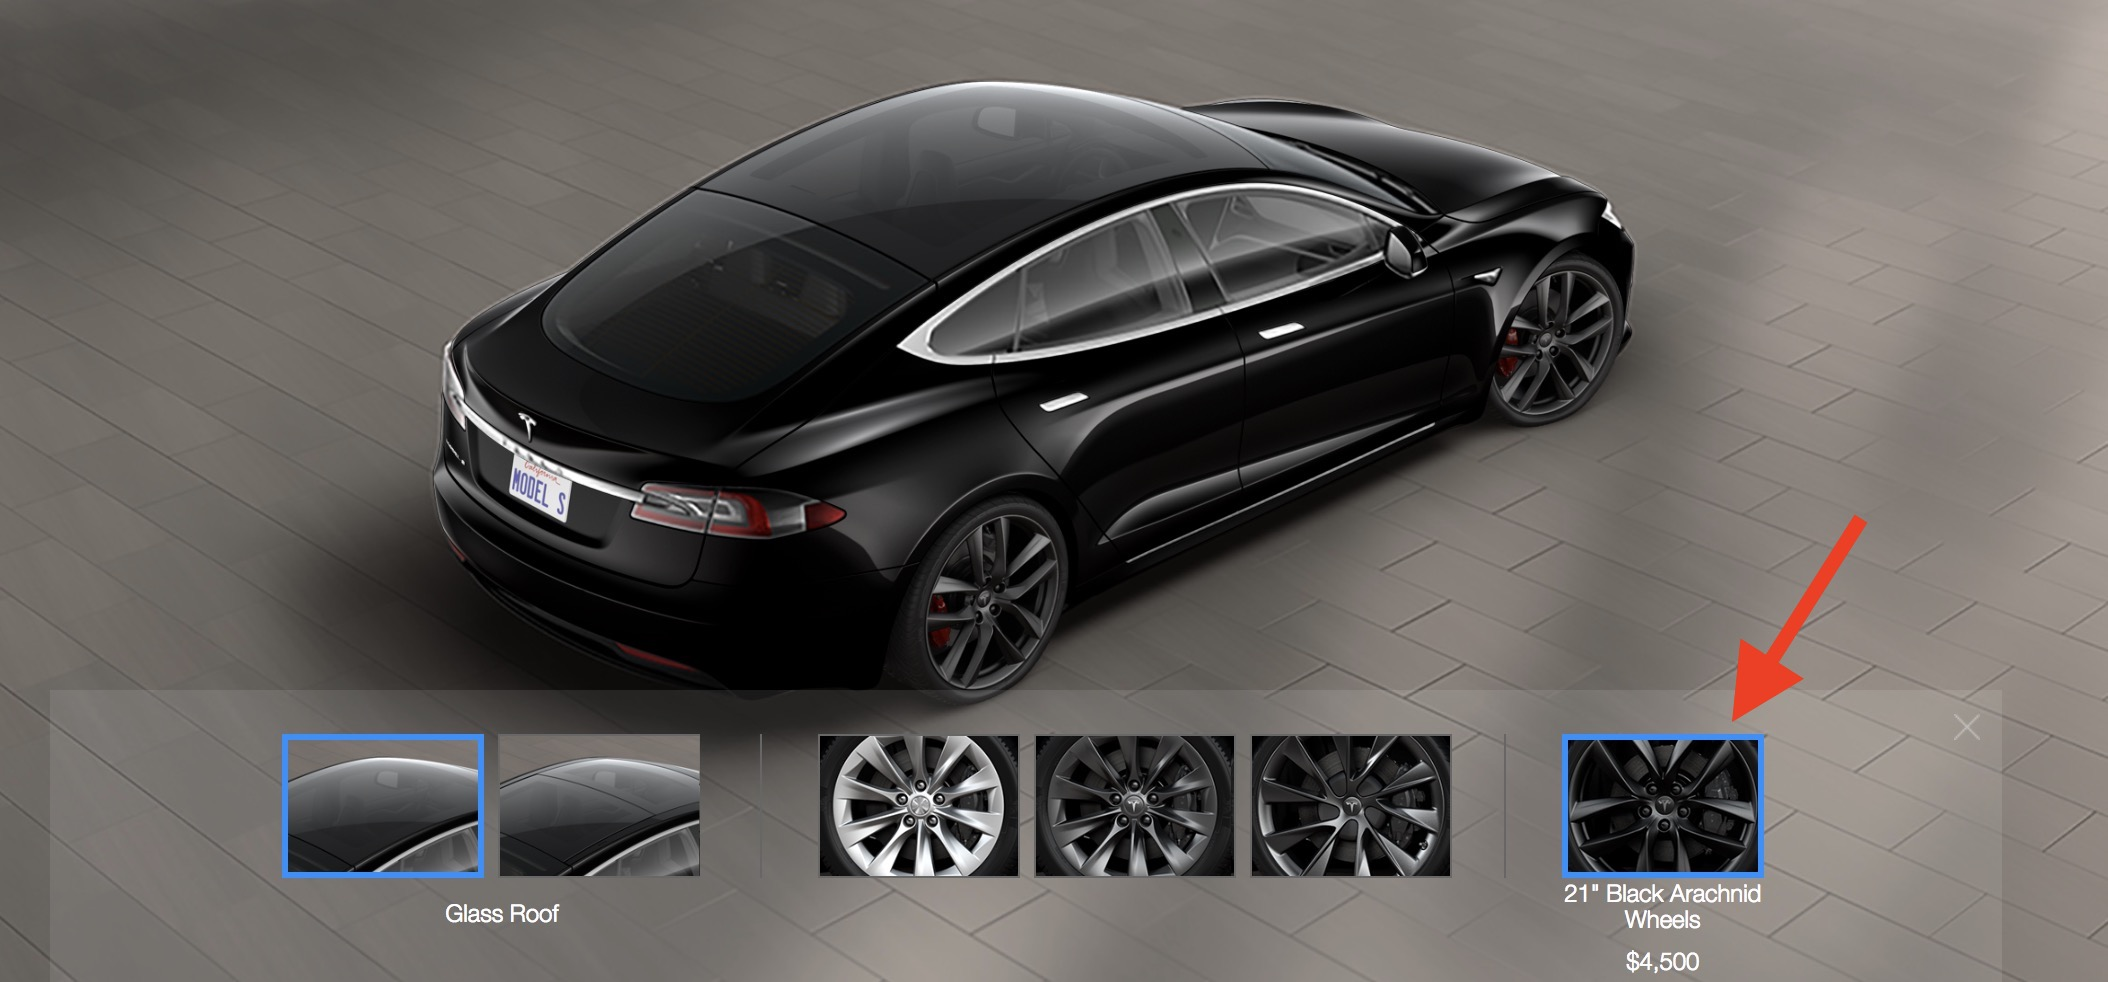 tesla brings back ventilated seats and makes new black arachnid wheels available